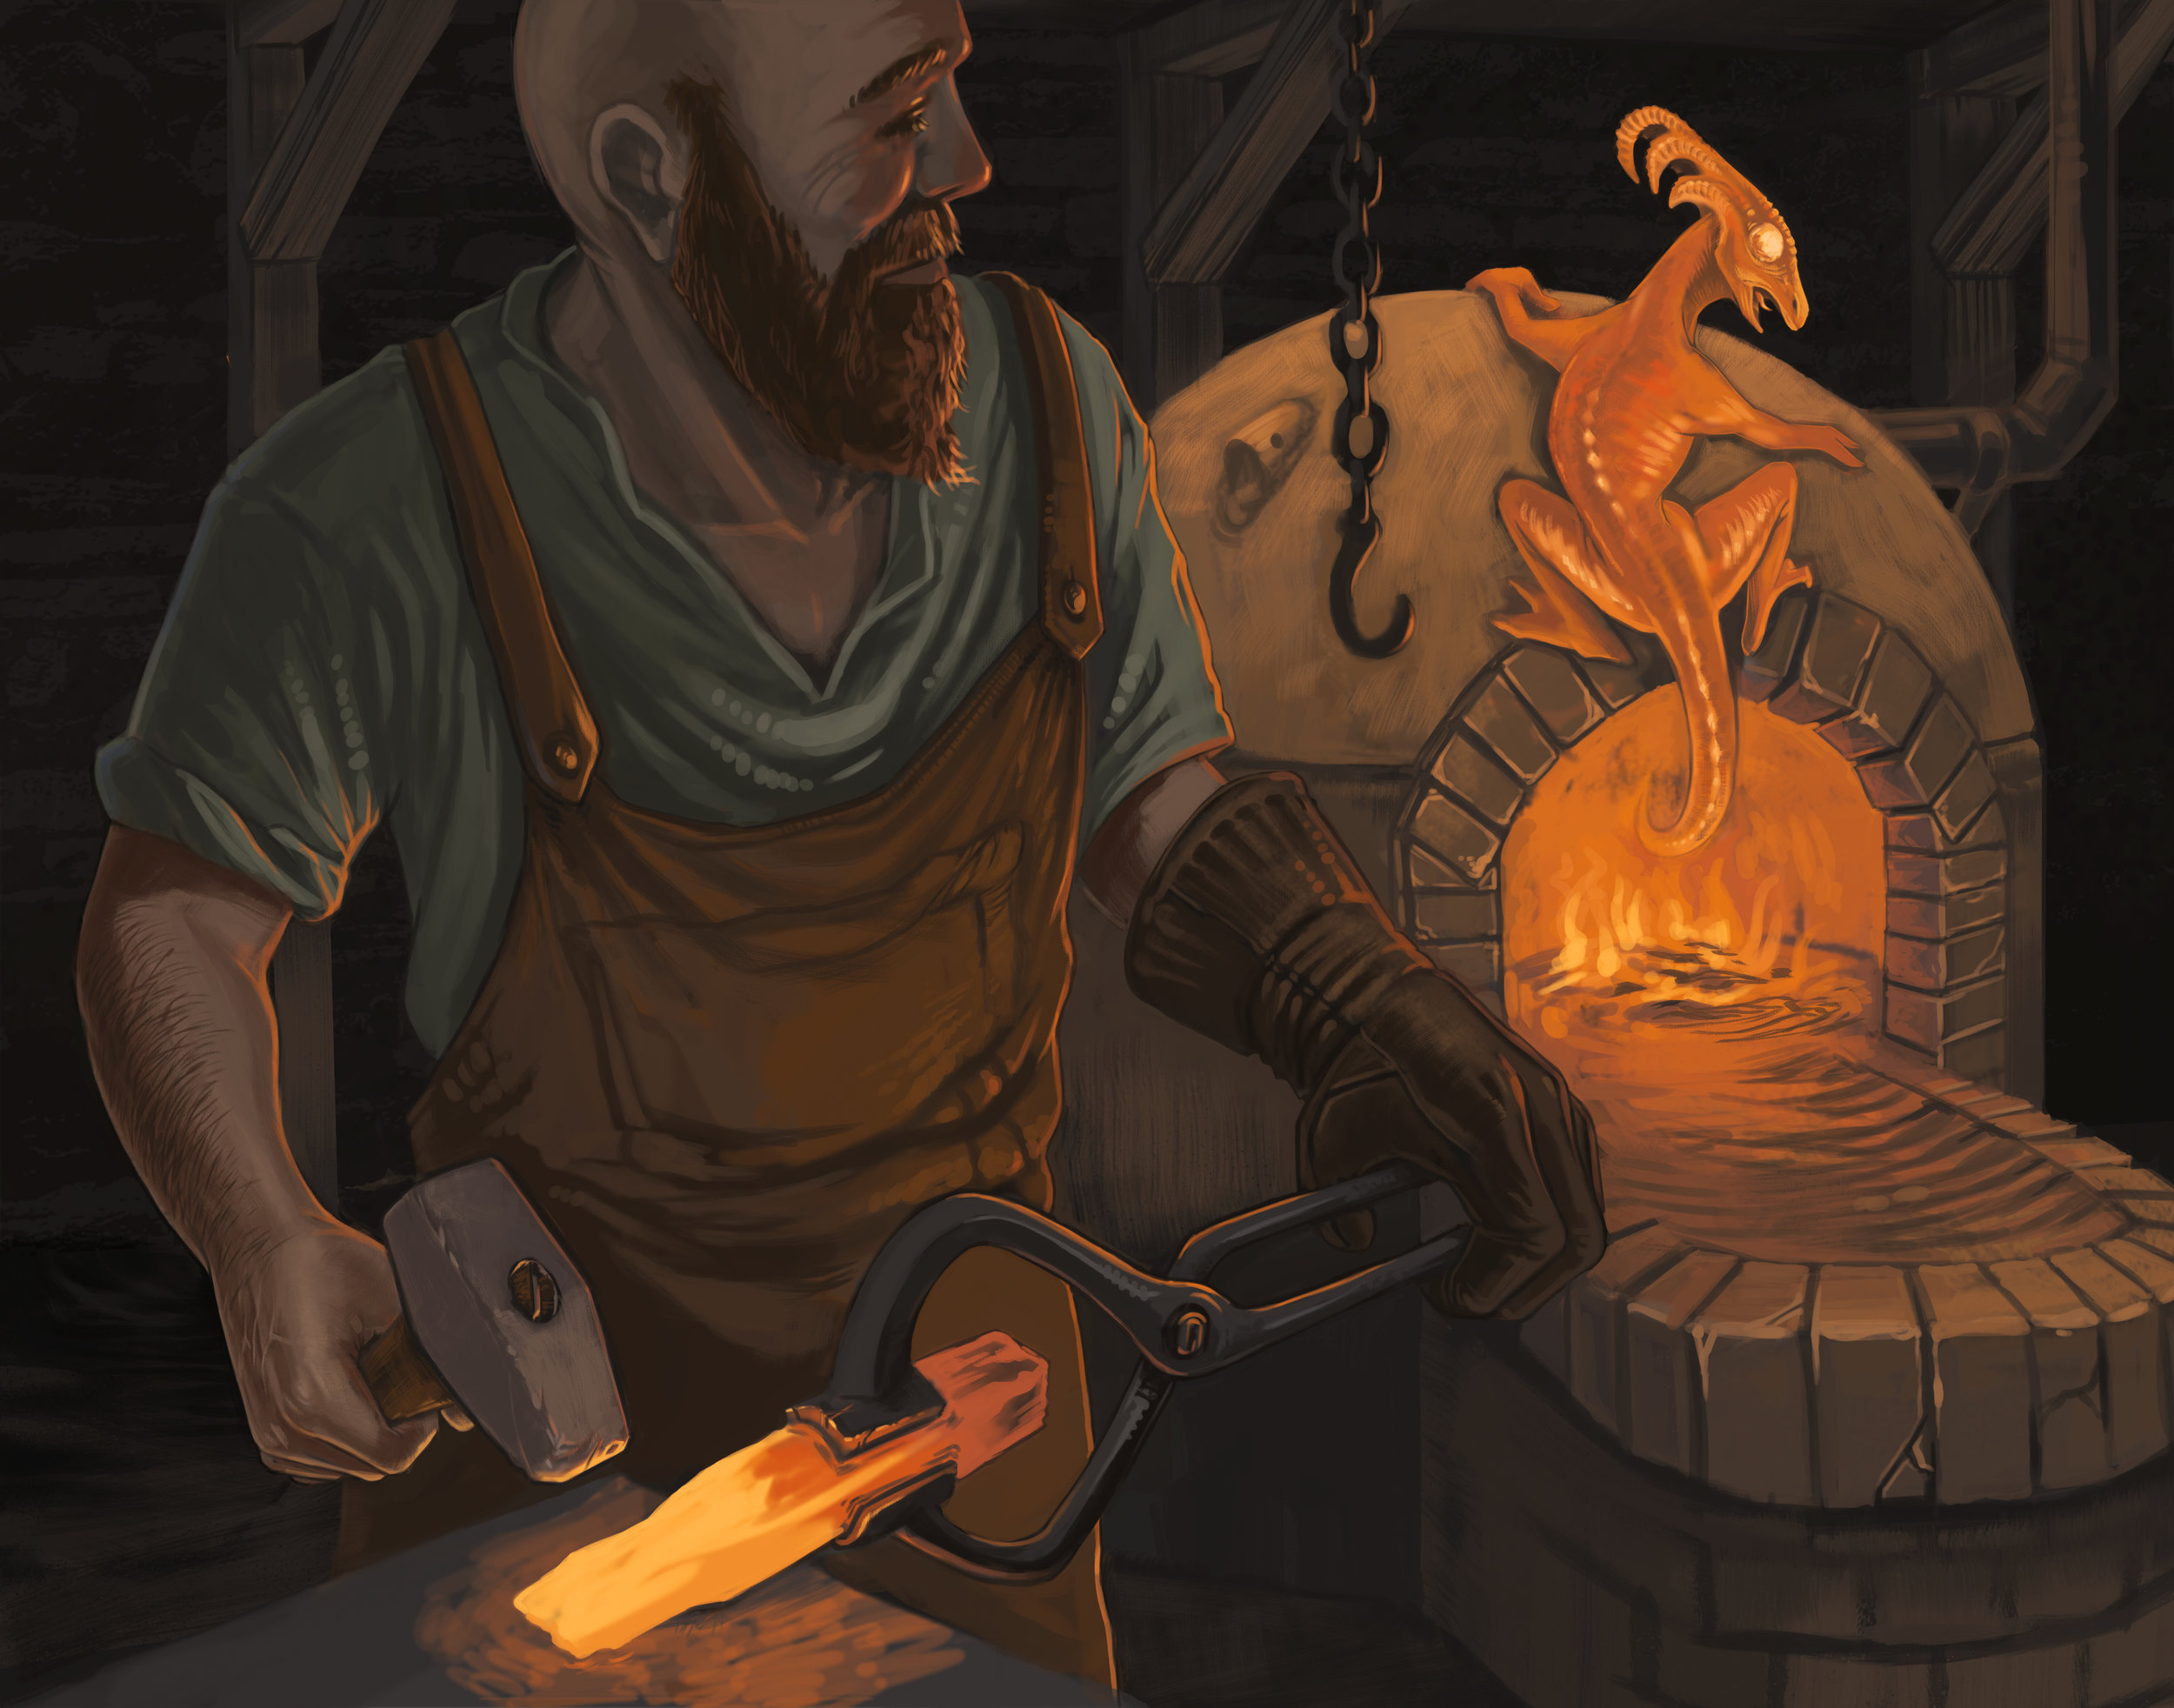 The blacksmith and his helper.